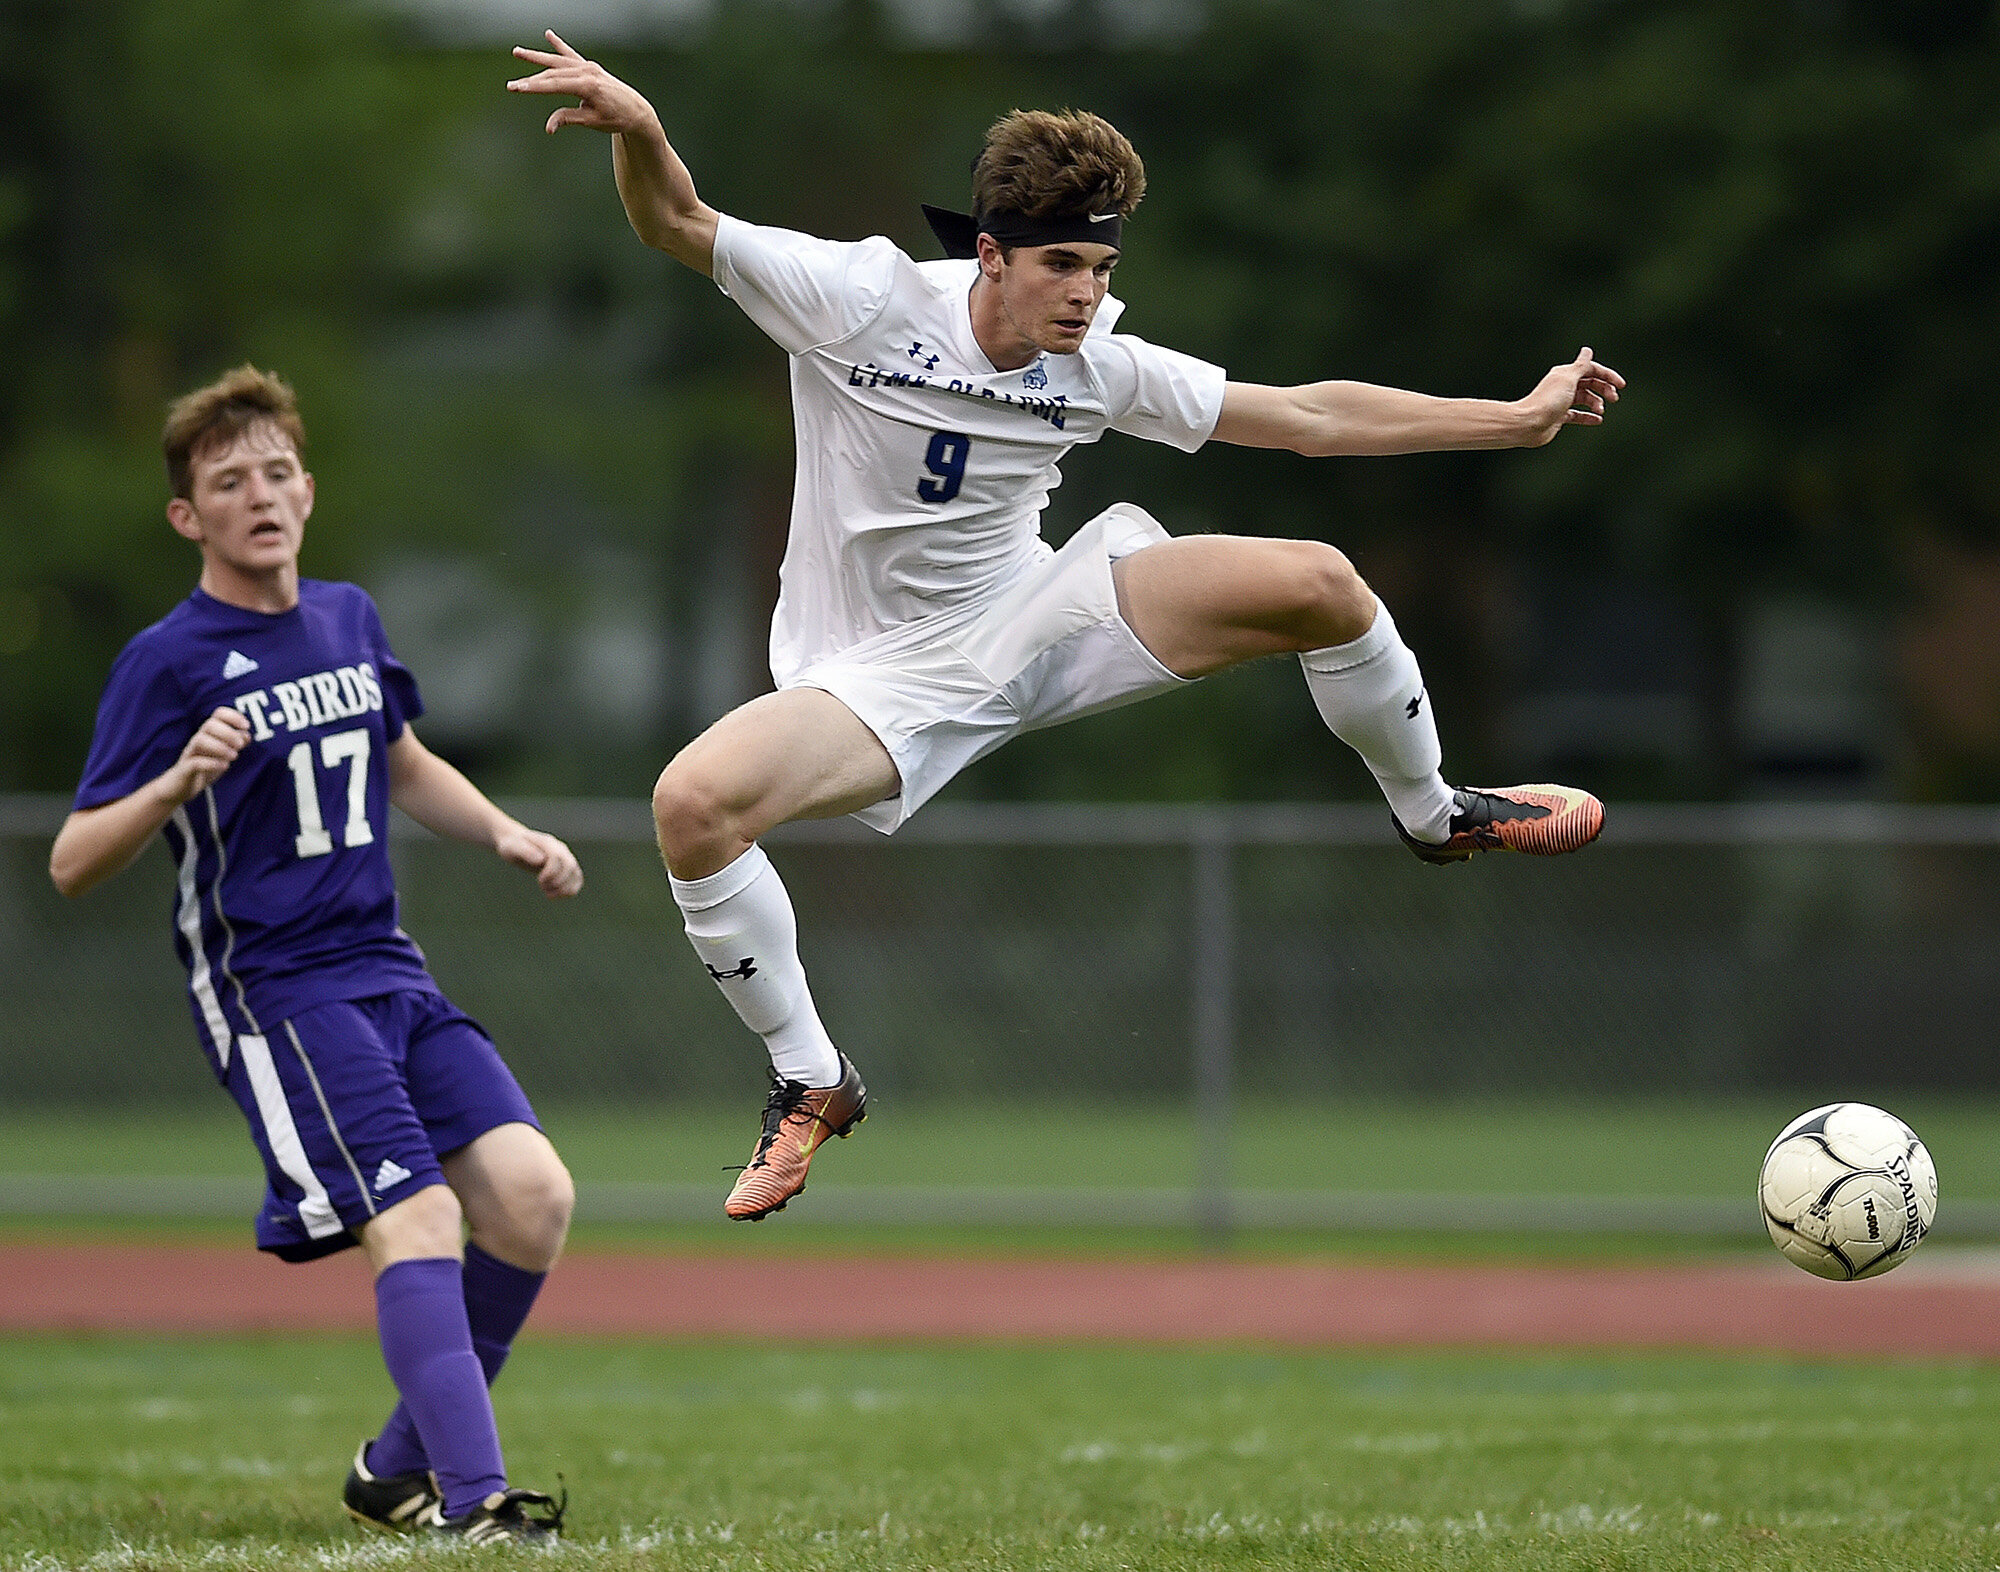 Old Lyme's Rory Cavicke (9) kicks a ball past North Branford's Jason Stanford (17) during a boys soccer game on Thursday, September 12, 2019 at Colafati Field. (The Day)